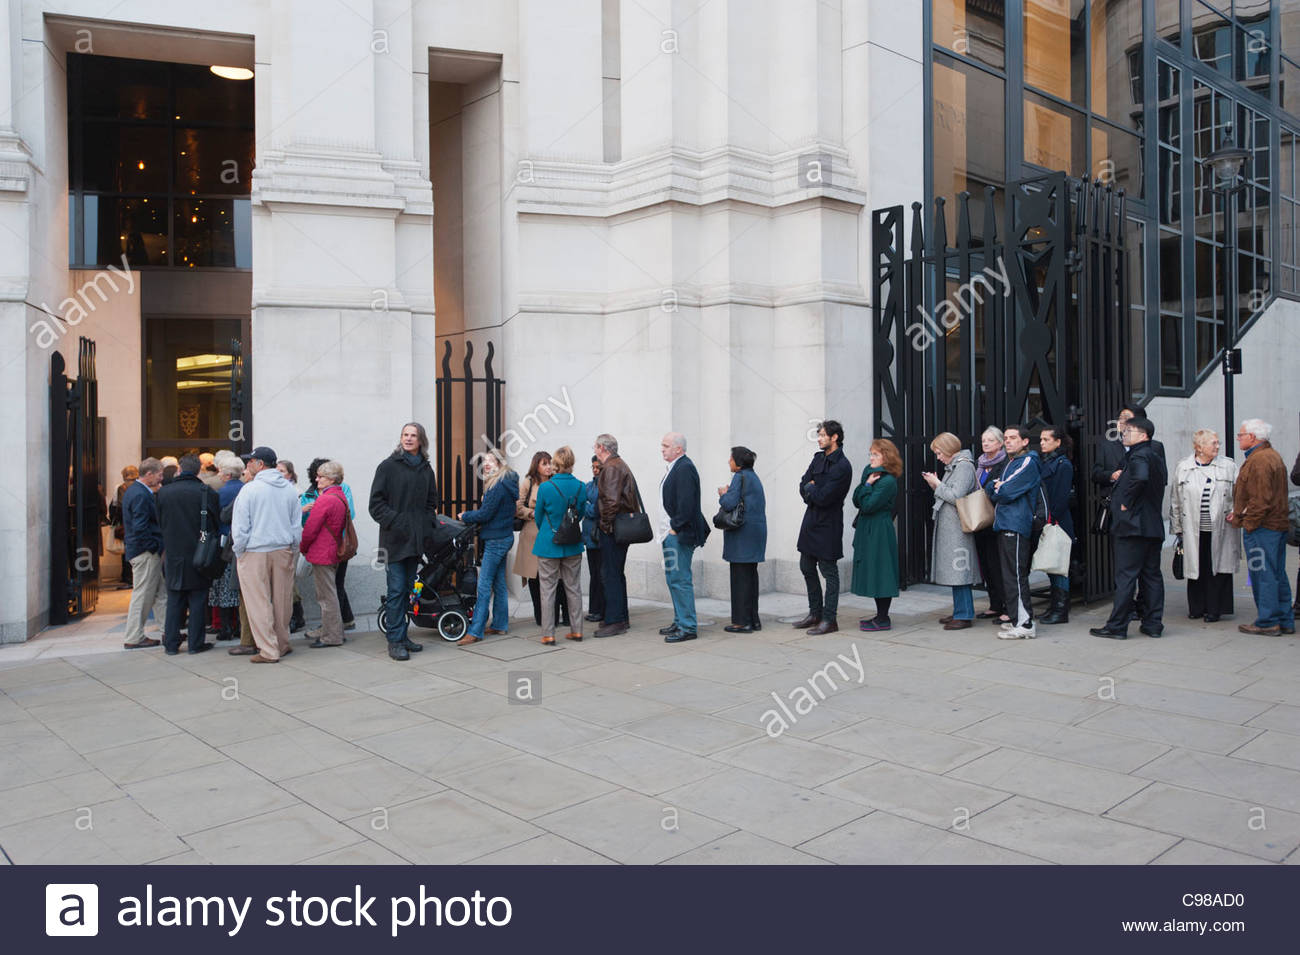 People queuing outside the National Gallery in London, England, while a popular show of Leonardo Di Vinci paintings - Stock Image